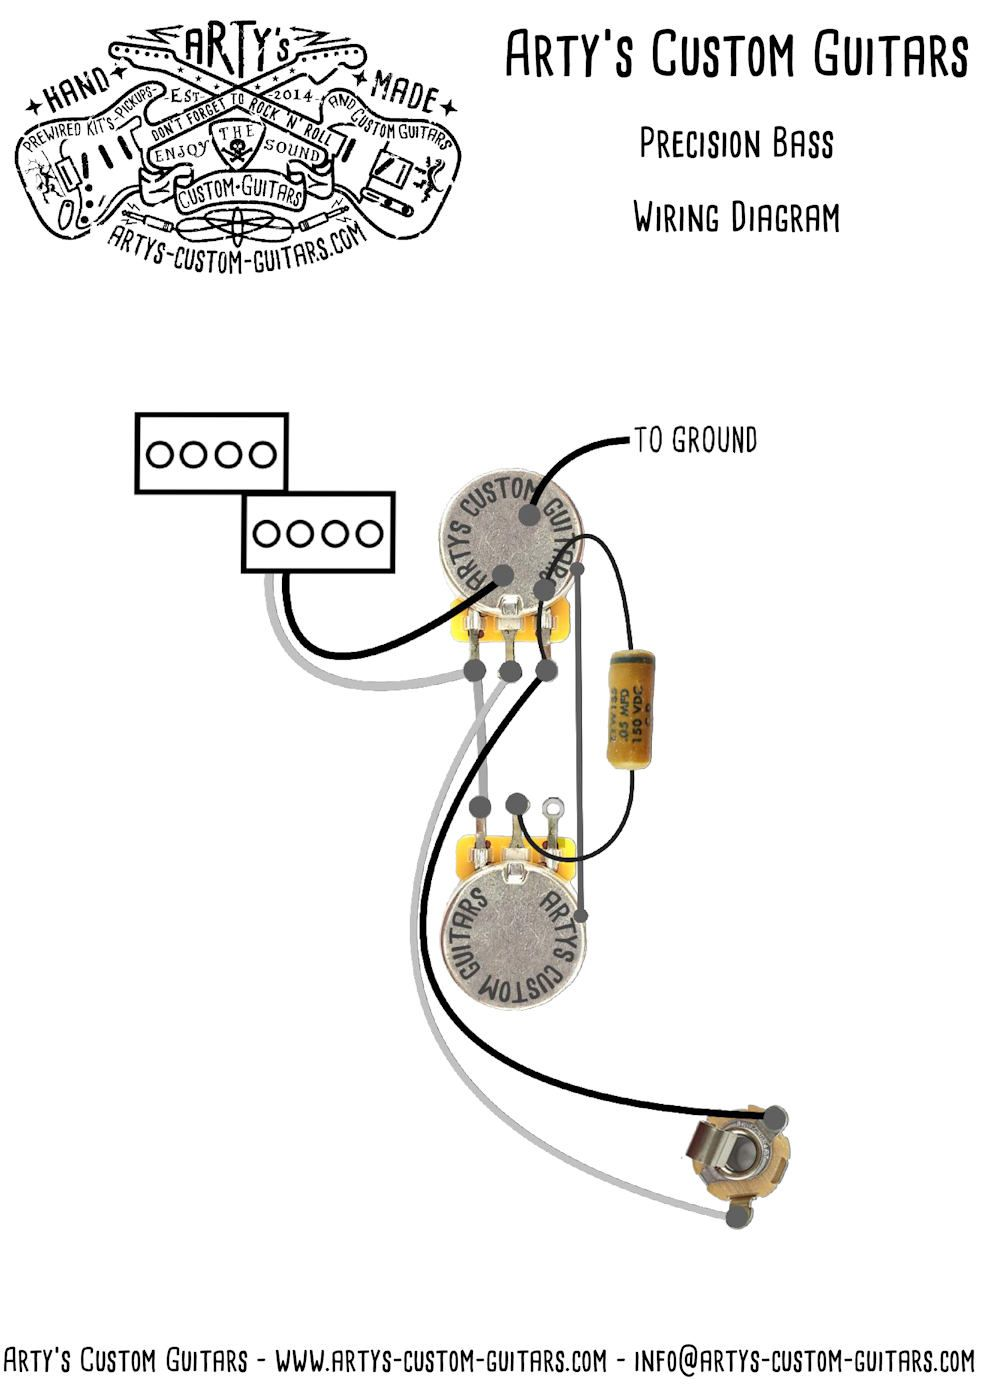 P-Bass Vintage Prewired Kit PRECISION BASS in 2019